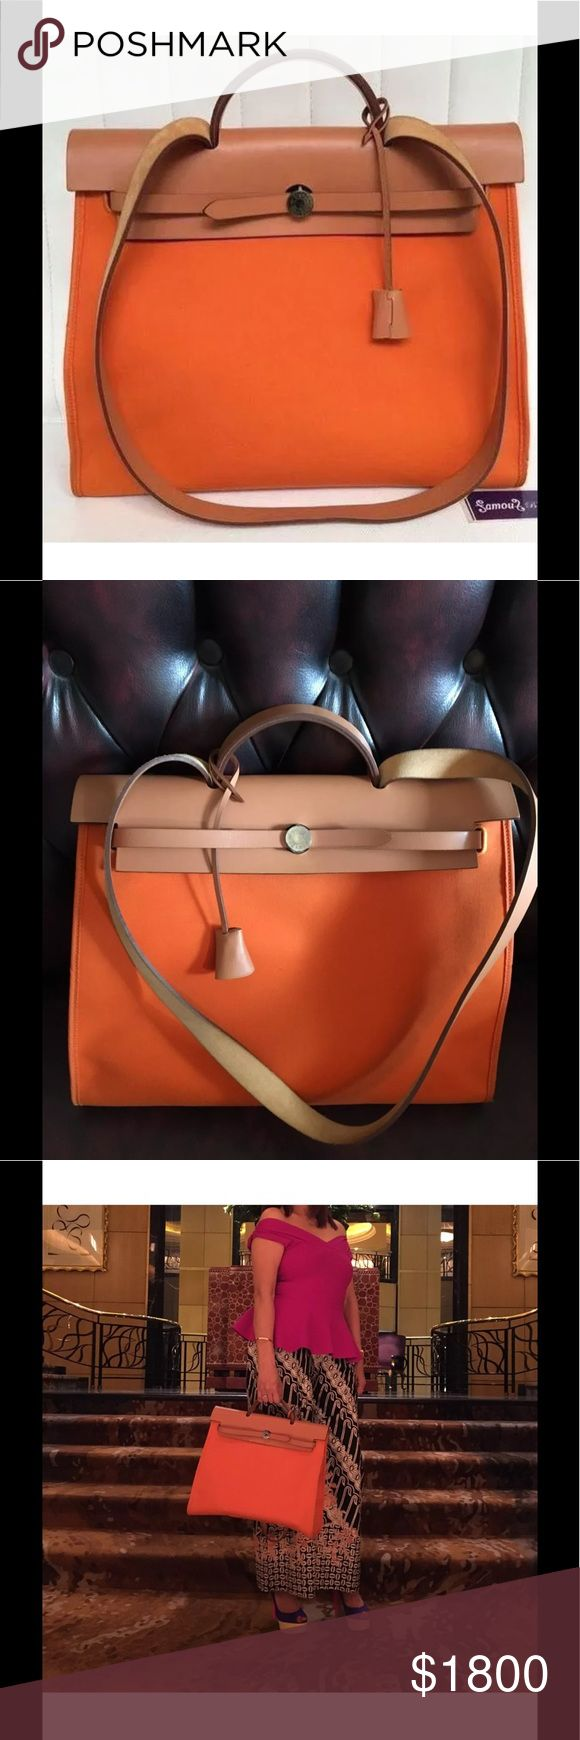 Hermes Herbag Orange Size 39 Stamp N Beautiful Hermes Herbag in excellent condition only worn 4 or 5 times. Interior & exterior is excellent. This bag you can carry it as a sling bag, shoulder bag, or hand carry it. Come with Hermes dust bag, padlock, & Pochete.                    Sorry no Trade. Hermes Bags Shoulder Bags